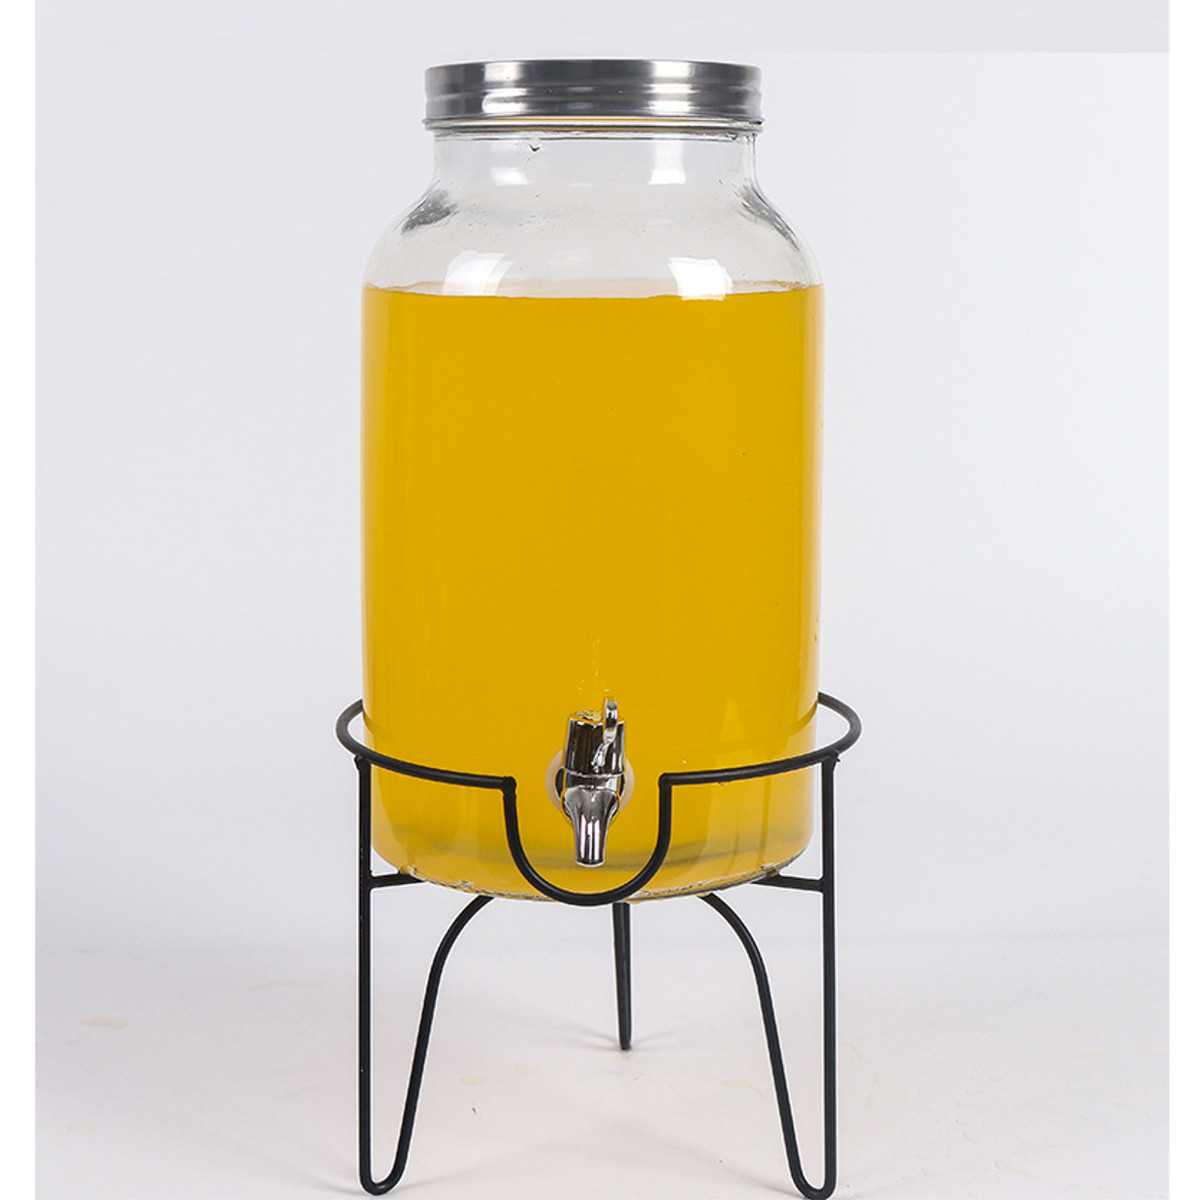 5.5L Drink Beverage Dispenser and Stand Beverage Water Juice Beer cans Detox Glass Jar With Water Faucet Home Party Kitchen Tool